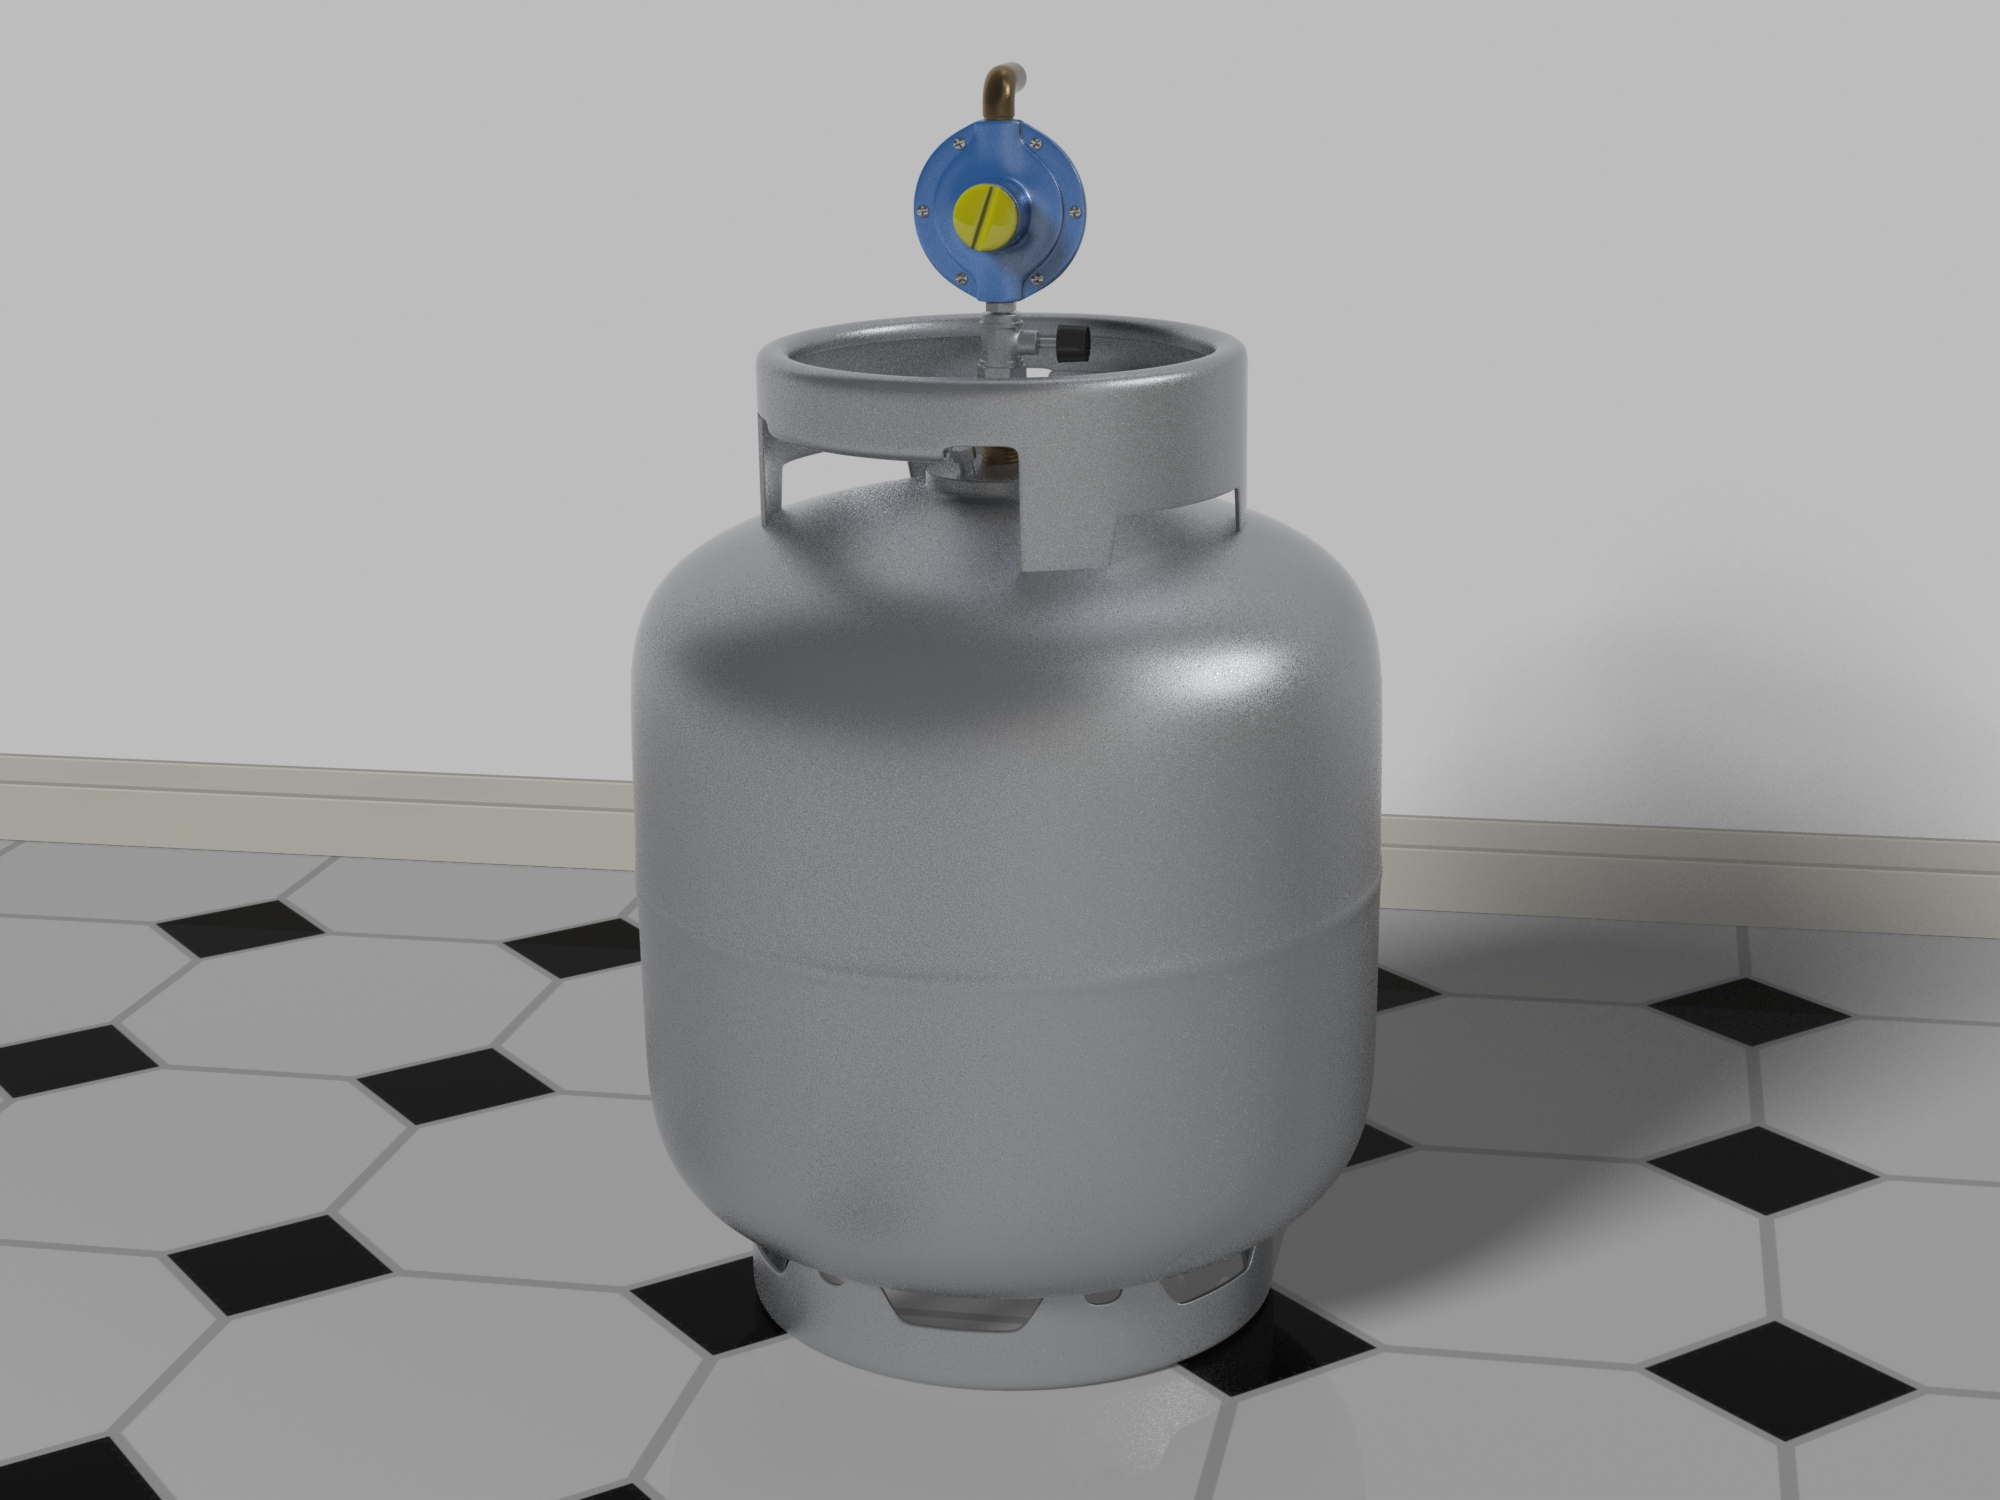 gas bottle with regulator 3d model max fbx c4d lxo  268063